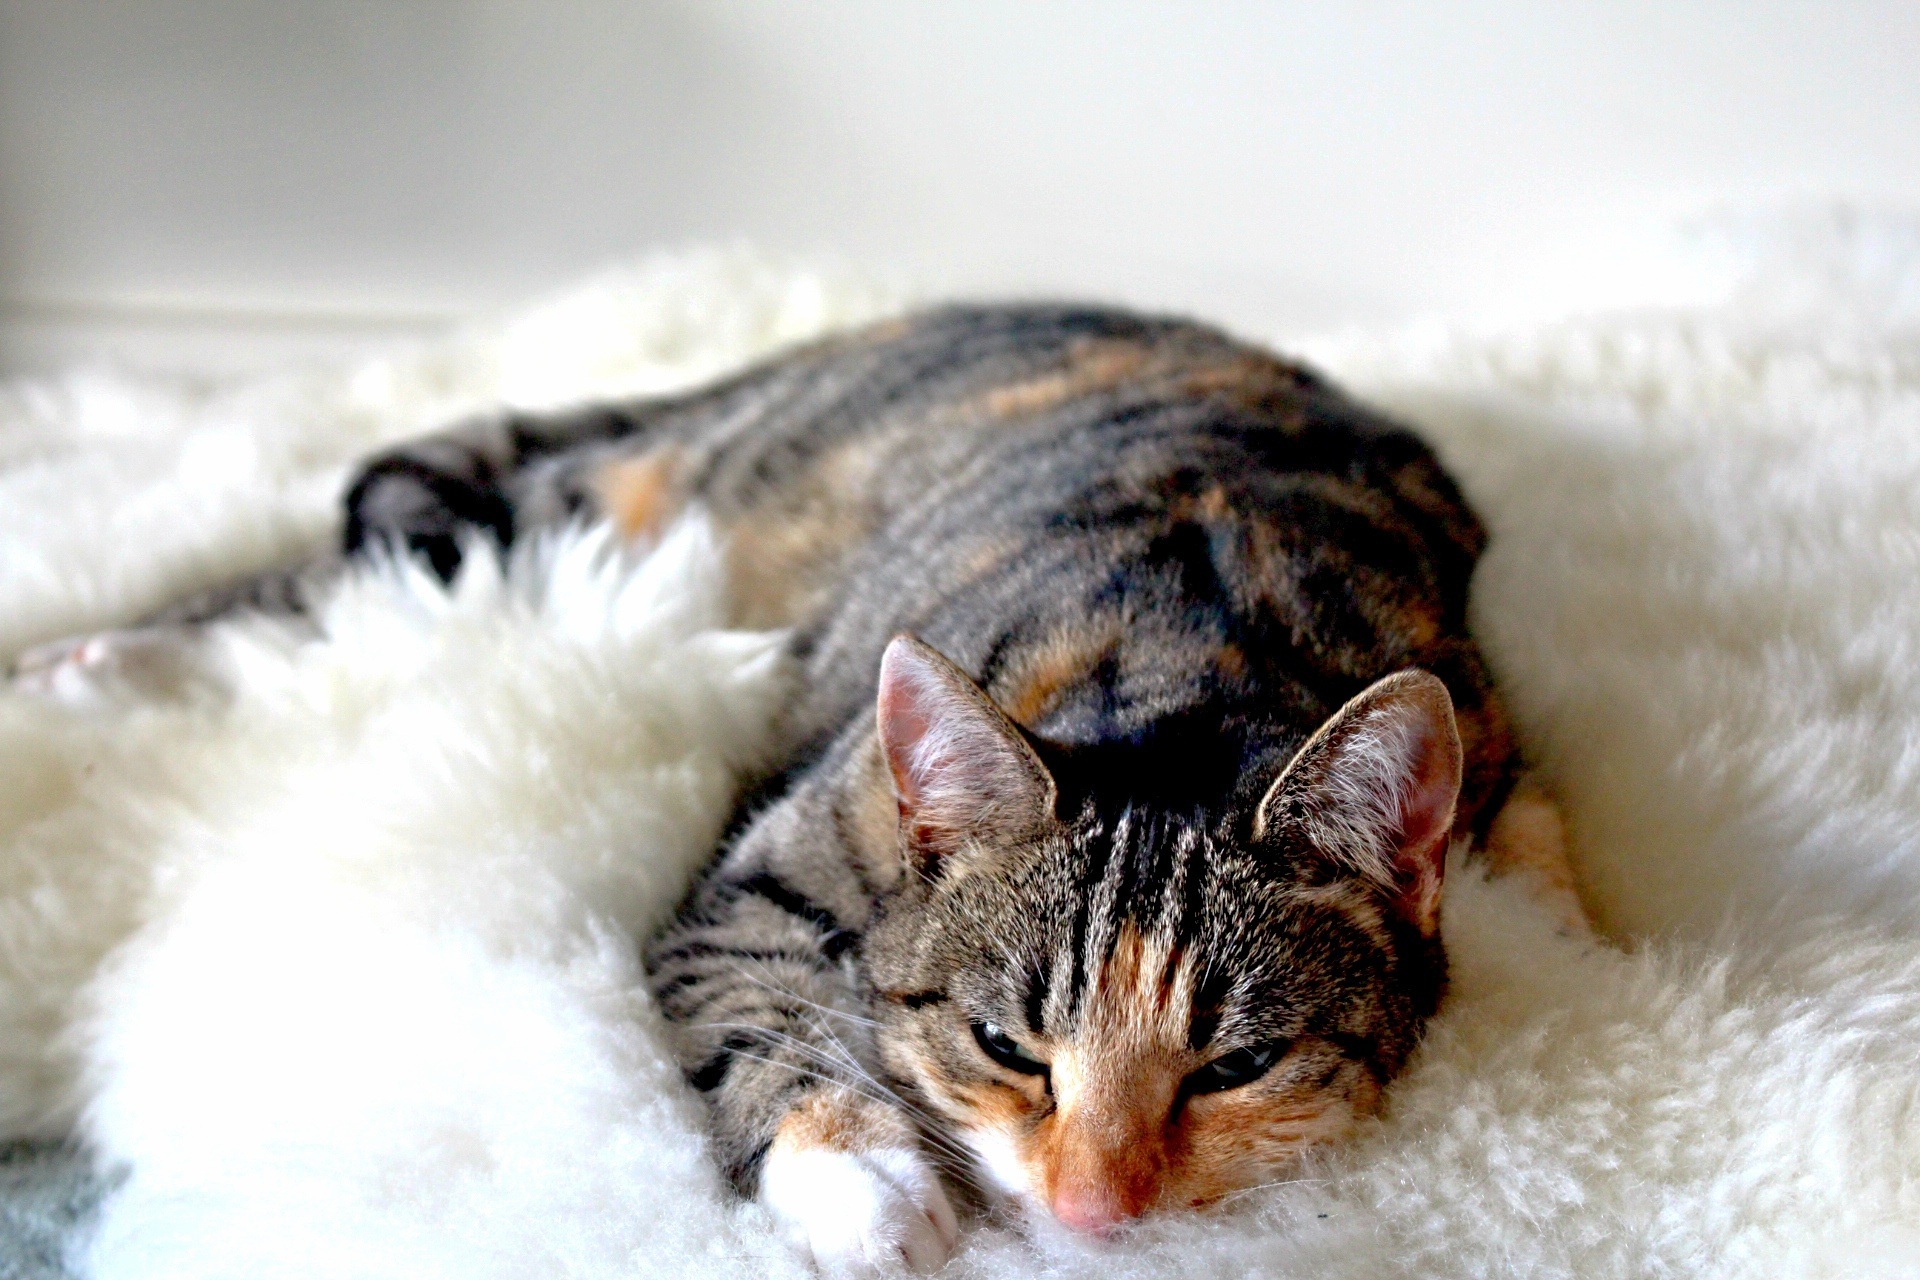 Canva - Cat Lying on Carpet.jpg